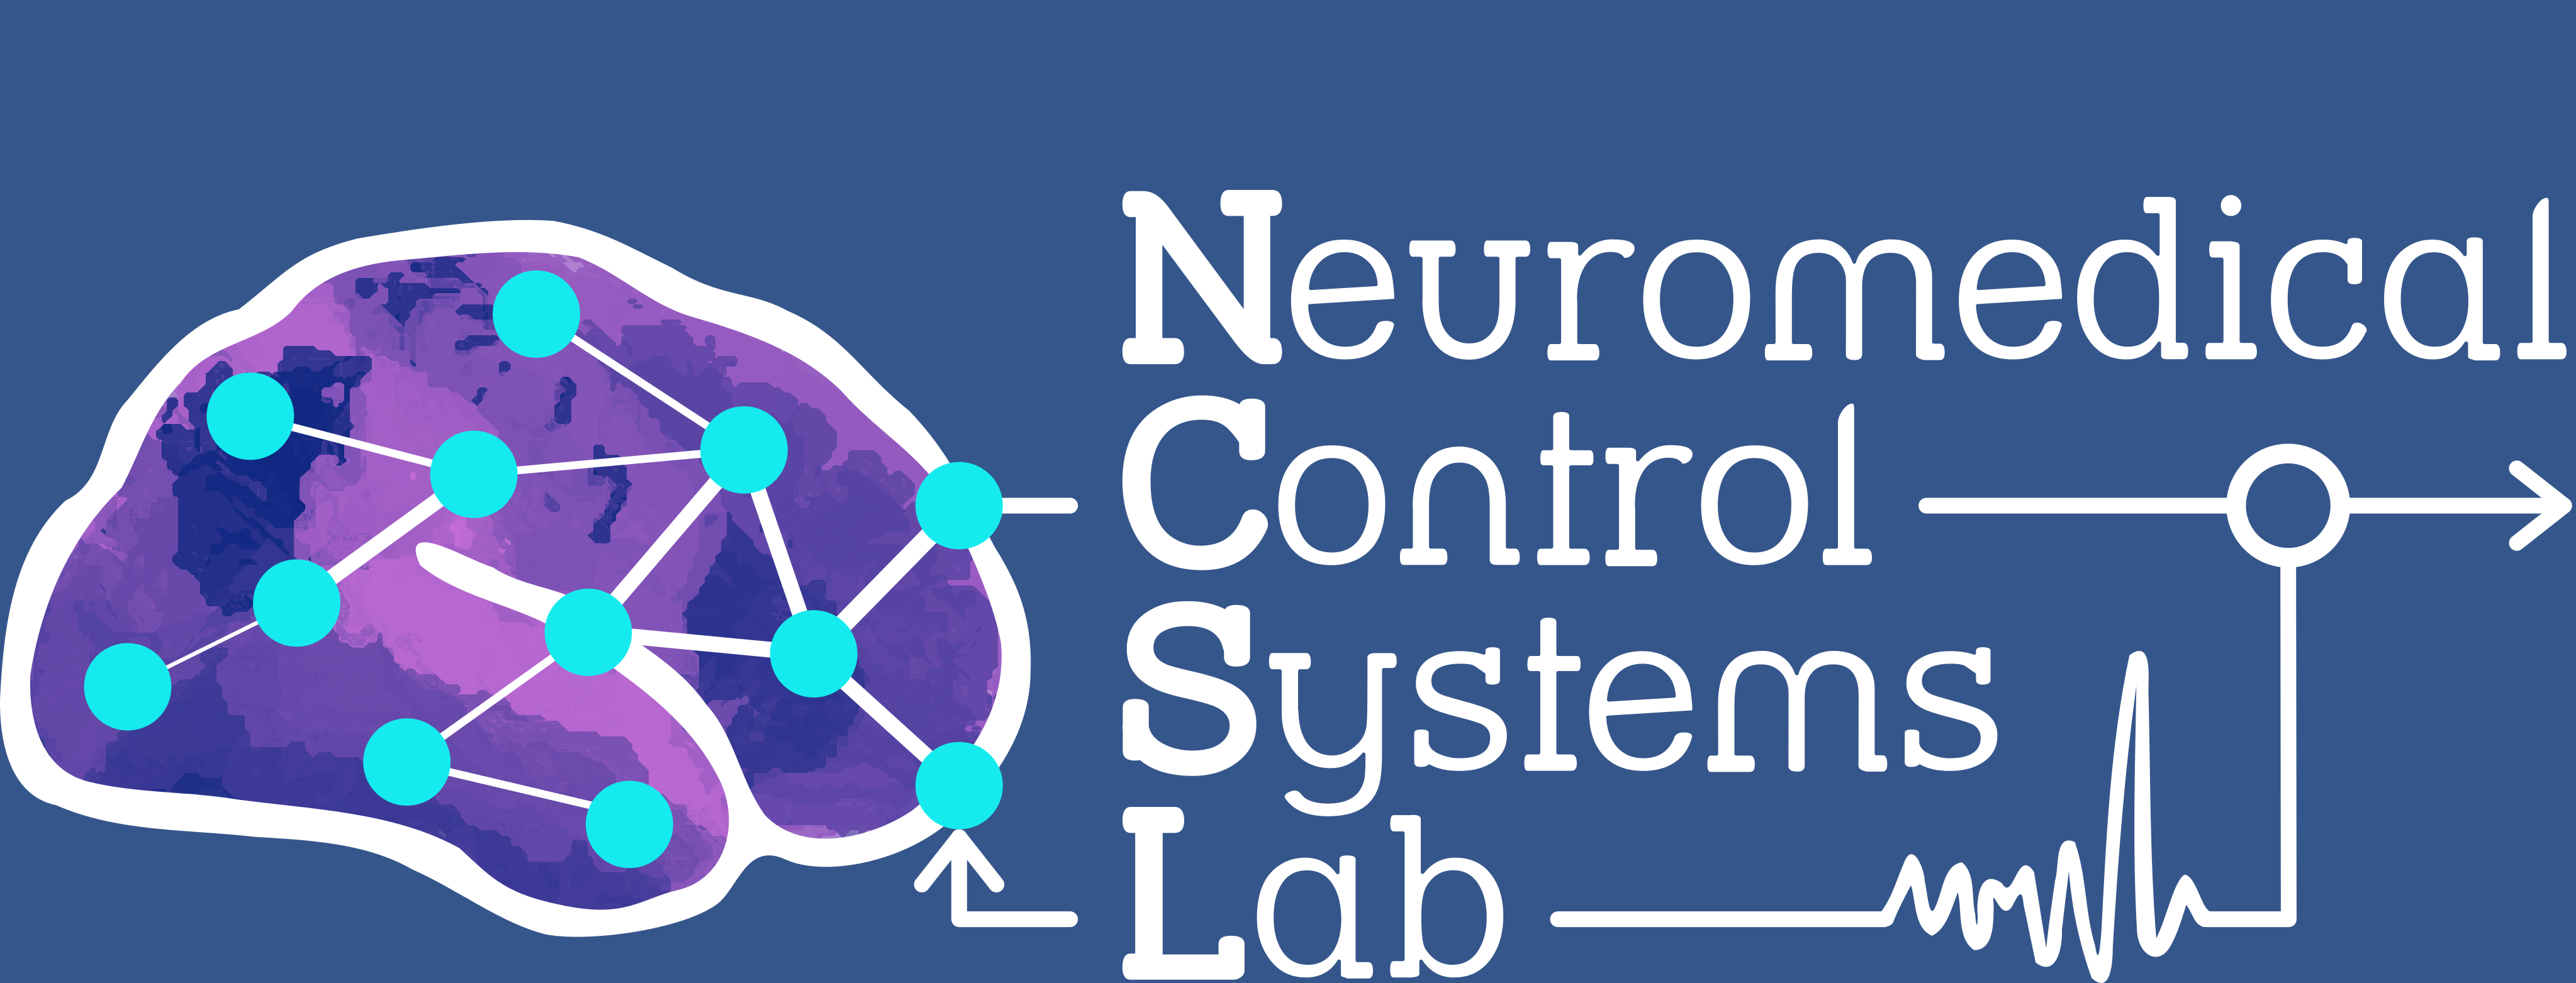 Neuromedical Control Systems Lab